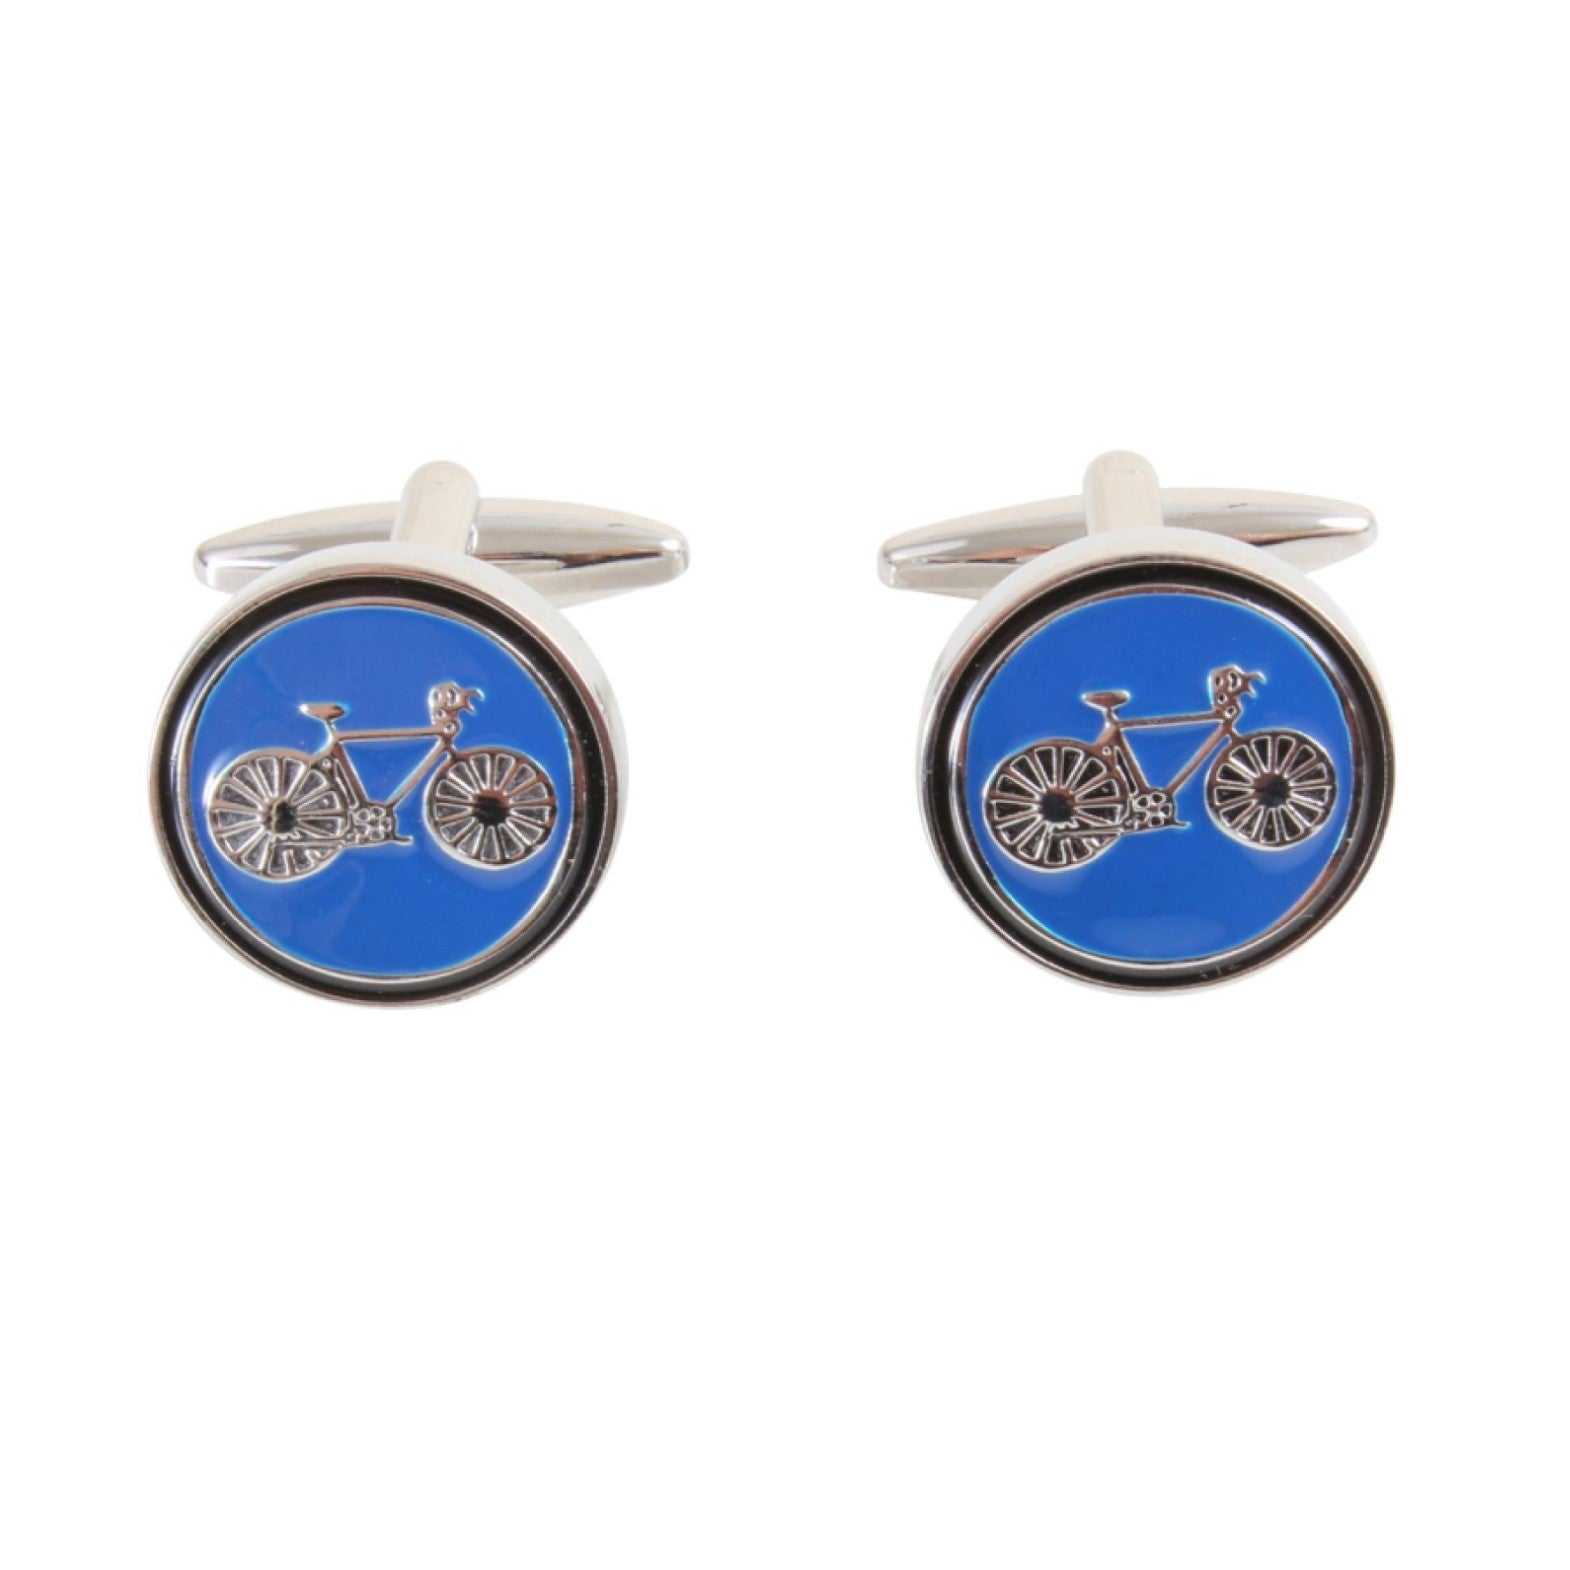 David Aster Bicycle Handkerchief & Cufflink Gift Set - Theodore Designs